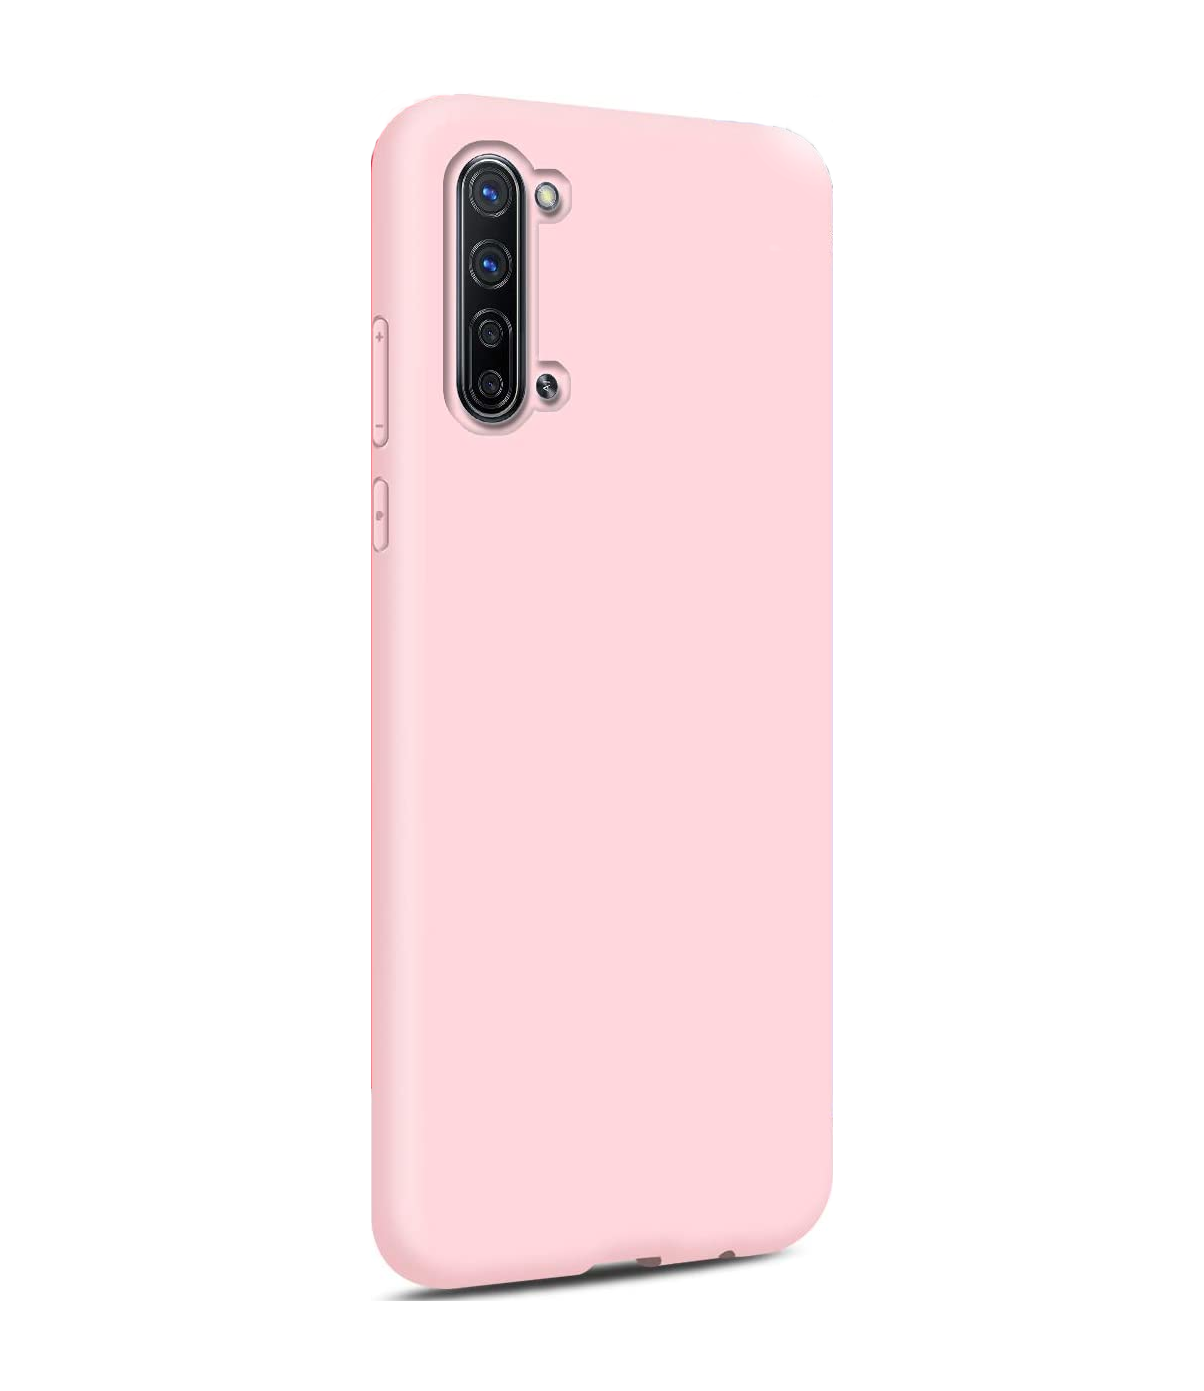 Coque Silicone TPU Couleur Rose Pour Oppo Find X2 Lite Little Boutik®